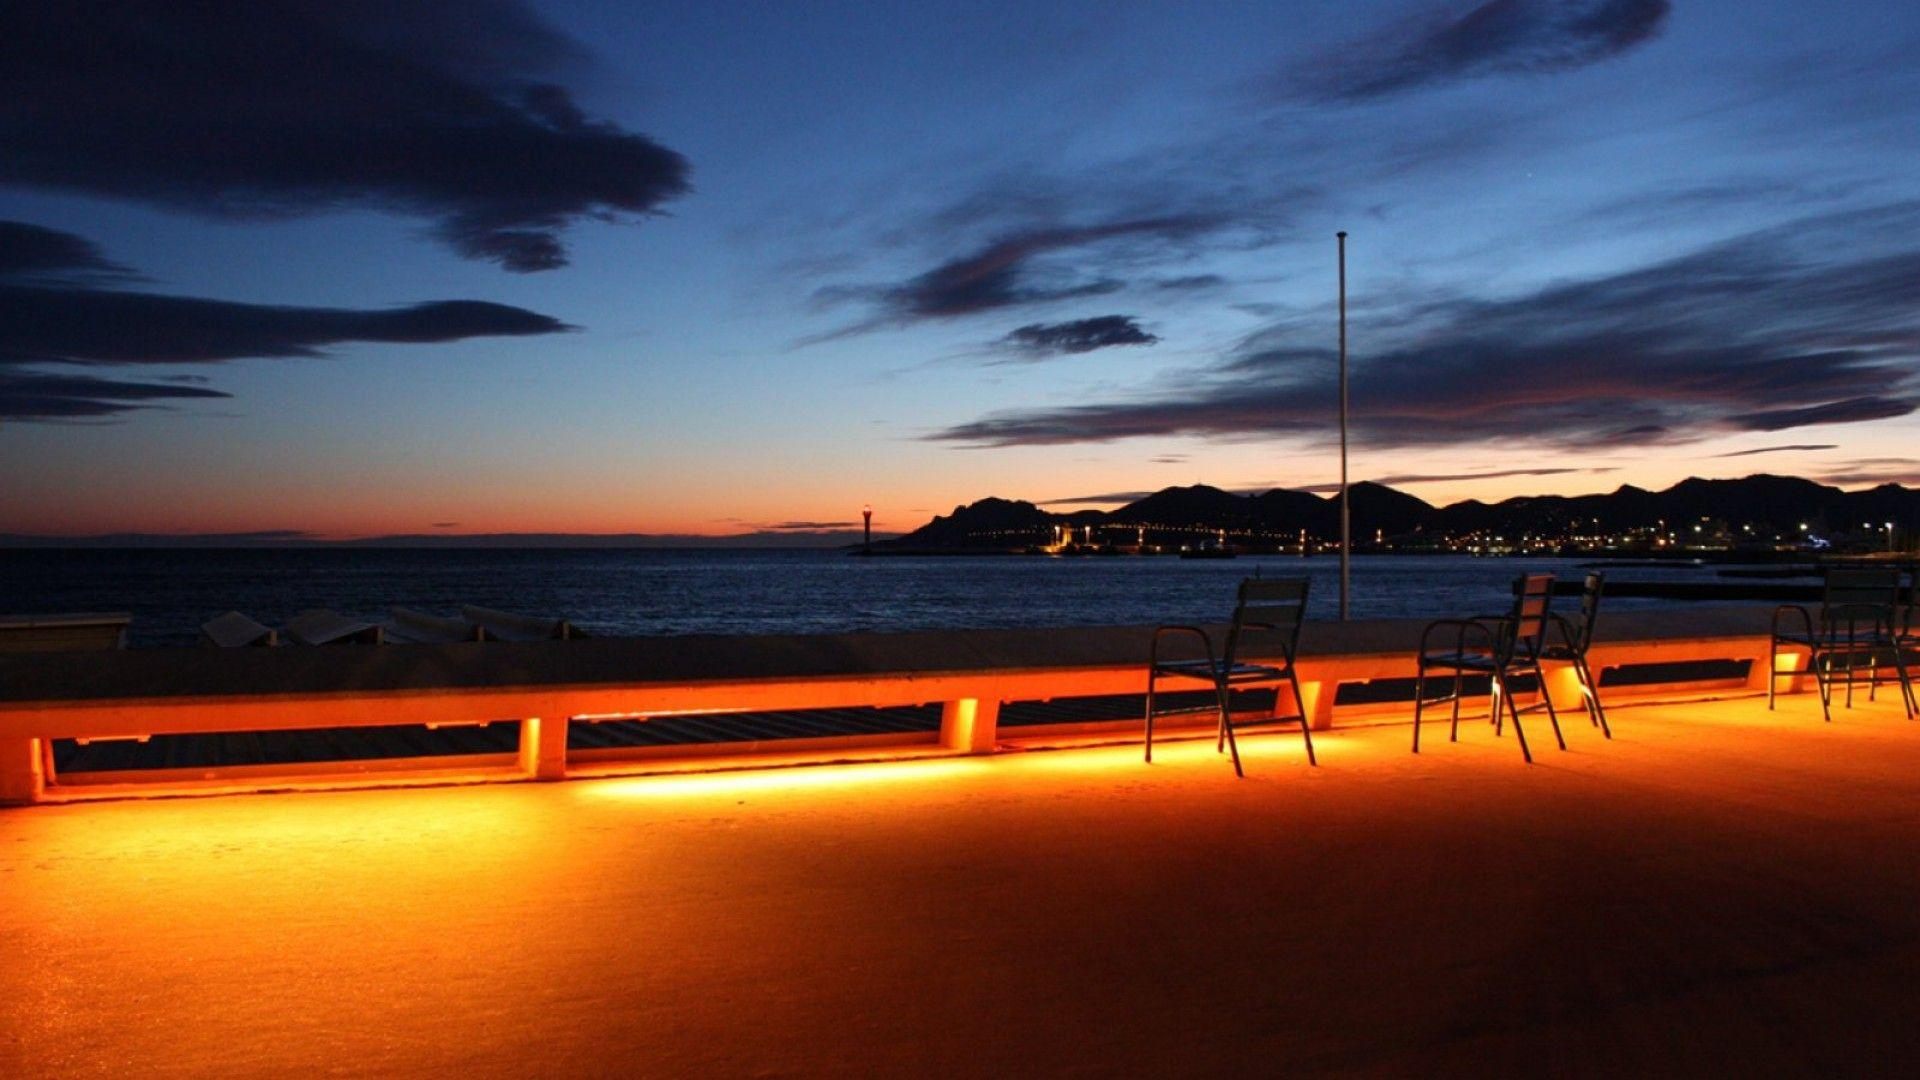 Night in Cannes, France wallpapers and image